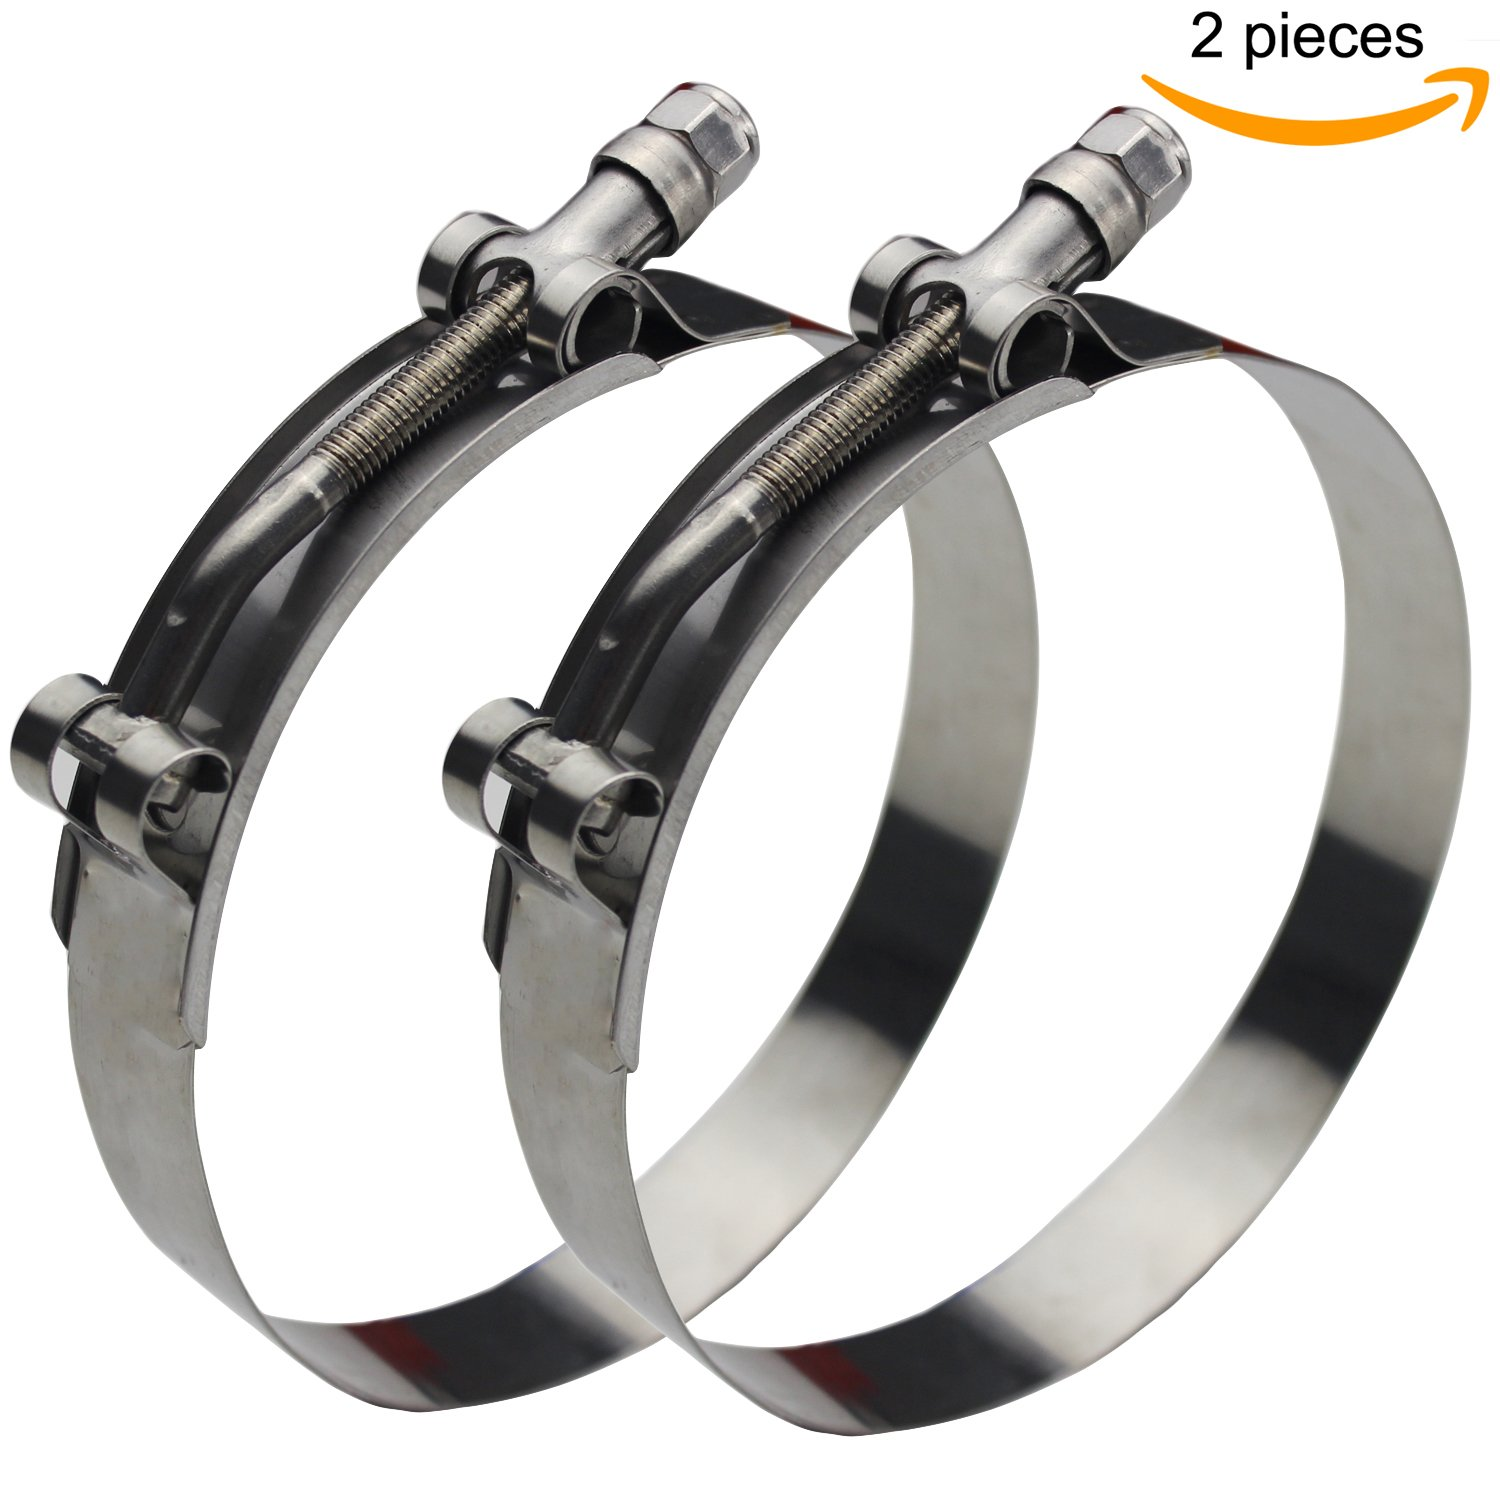 Ronteix Adjustable 304 Stainless Steel T-Bolt Hose Clamp (83~91mm, 2 Pack) Wuhan Jackwin Industrial Co. Ltd.